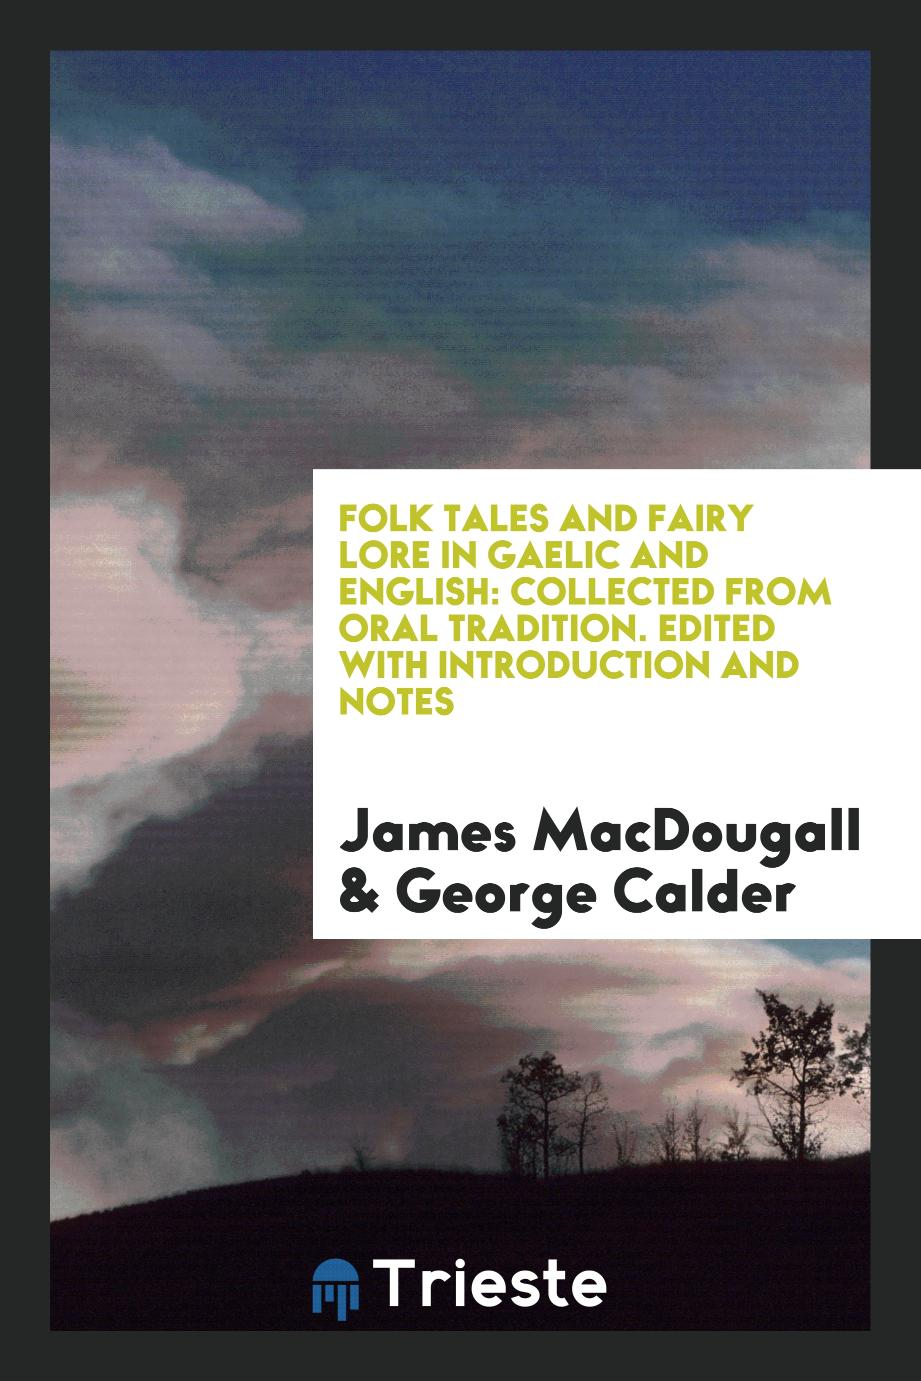 Folk Tales and Fairy Lore in Gaelic and English: Collected from Oral Tradition. Edited with Introduction and Notes